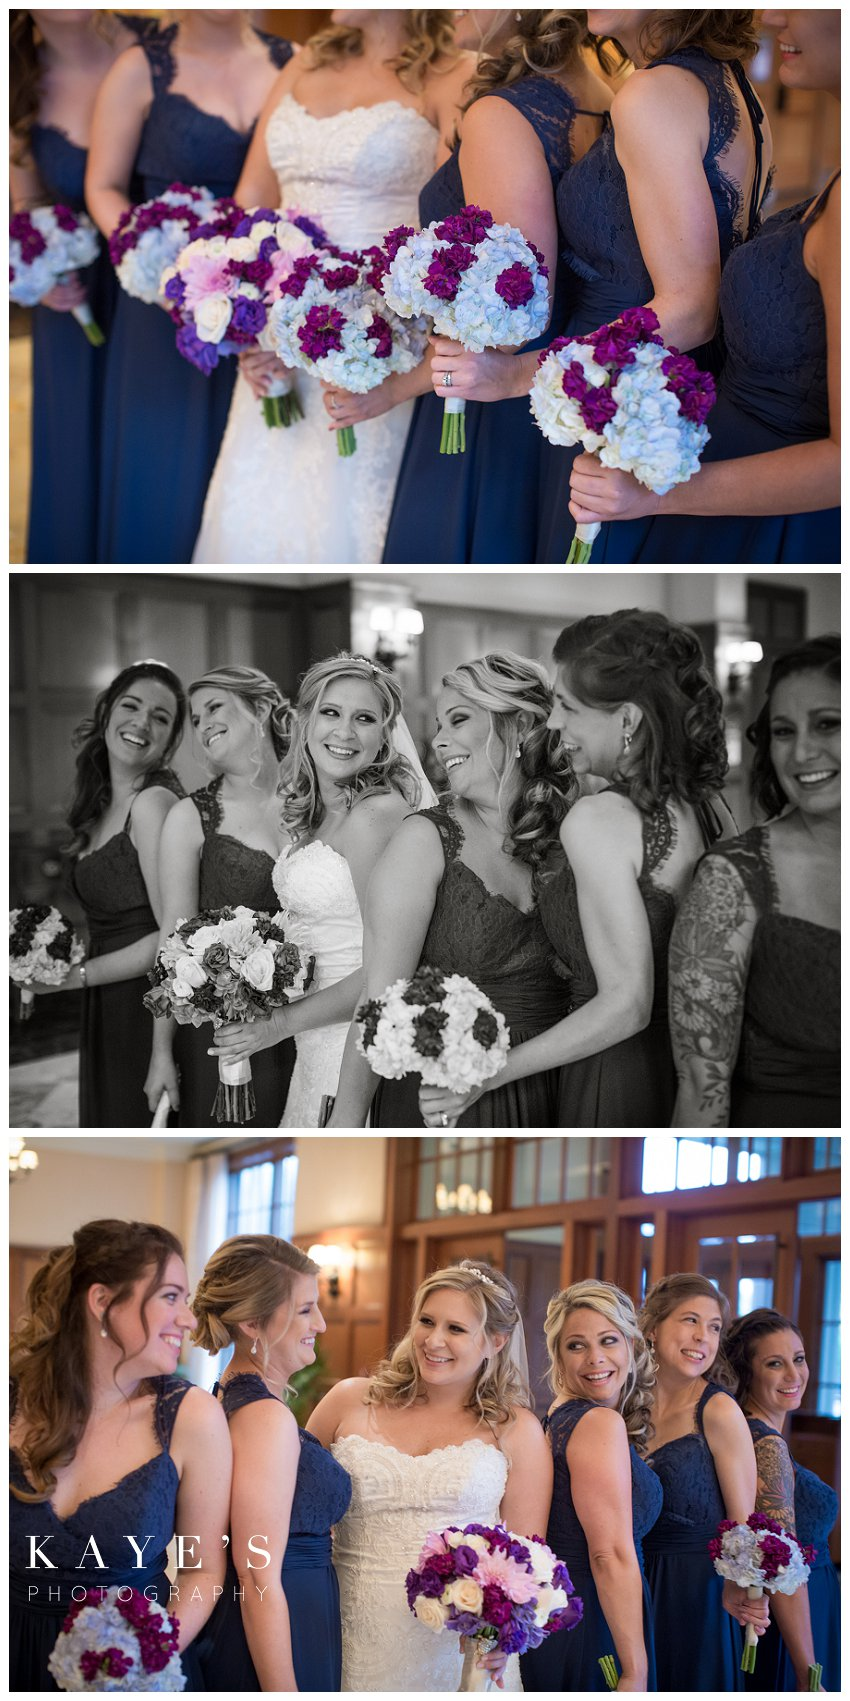 Kayes Photography- howell-michigan-wedding-photographer_0969.jpg